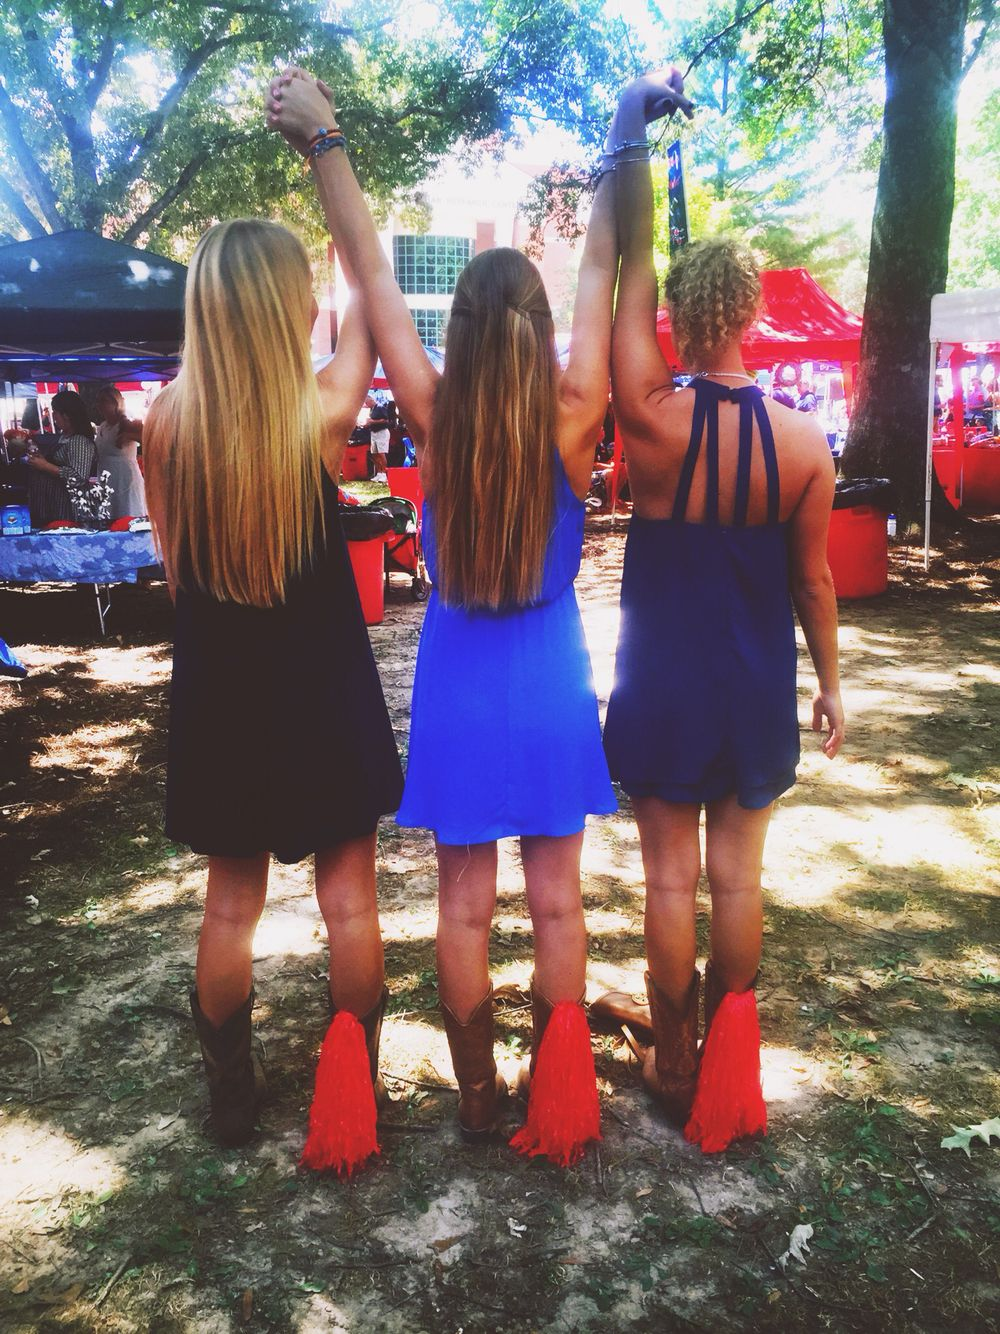 Ole miss gameday colors 2015 - Ole Miss Game Day 2015